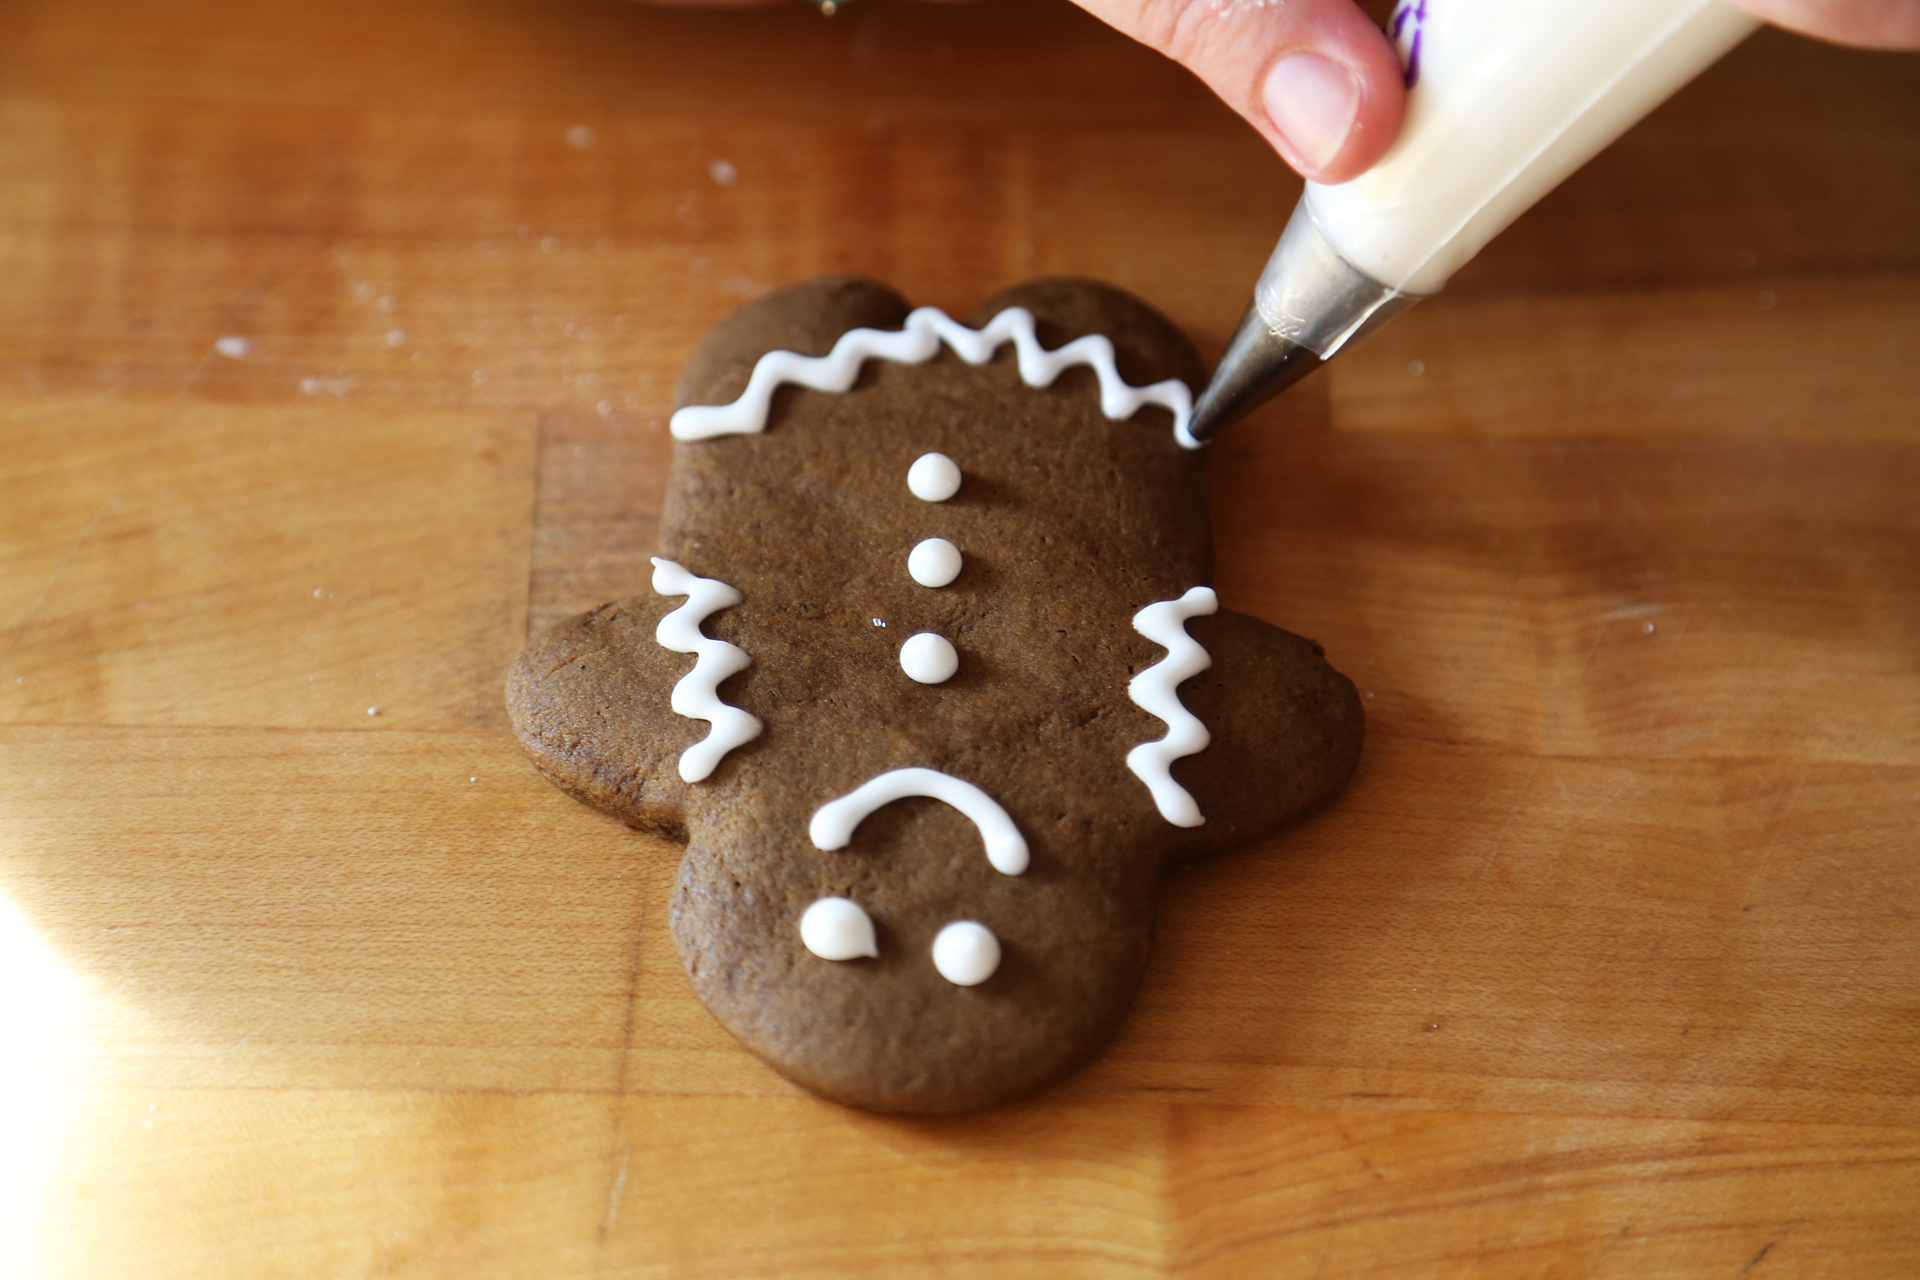 Decorating a gingerbread person with royal icing.